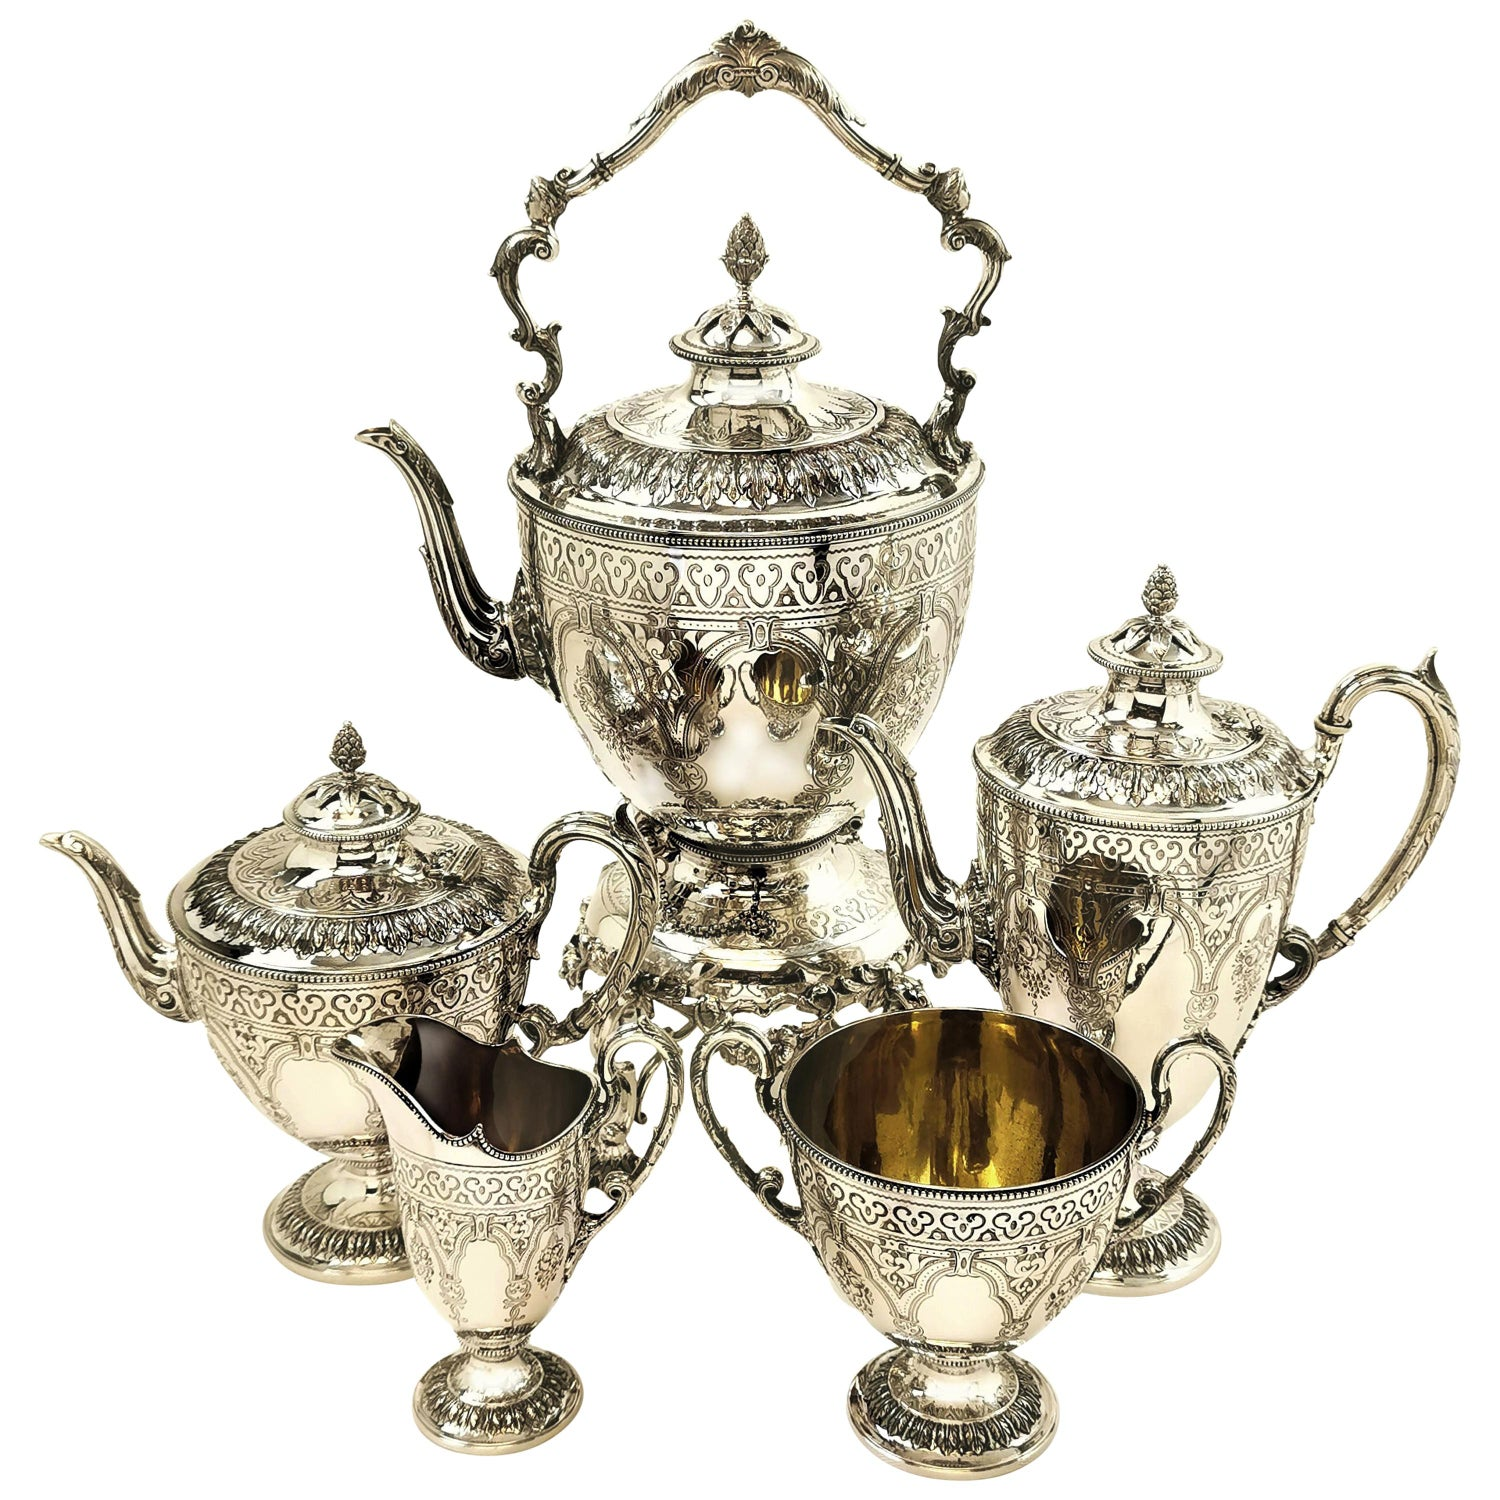 Antique Victorian 5 Piece Silver Tea and Coffee Set with Kettle, 1881 / 82